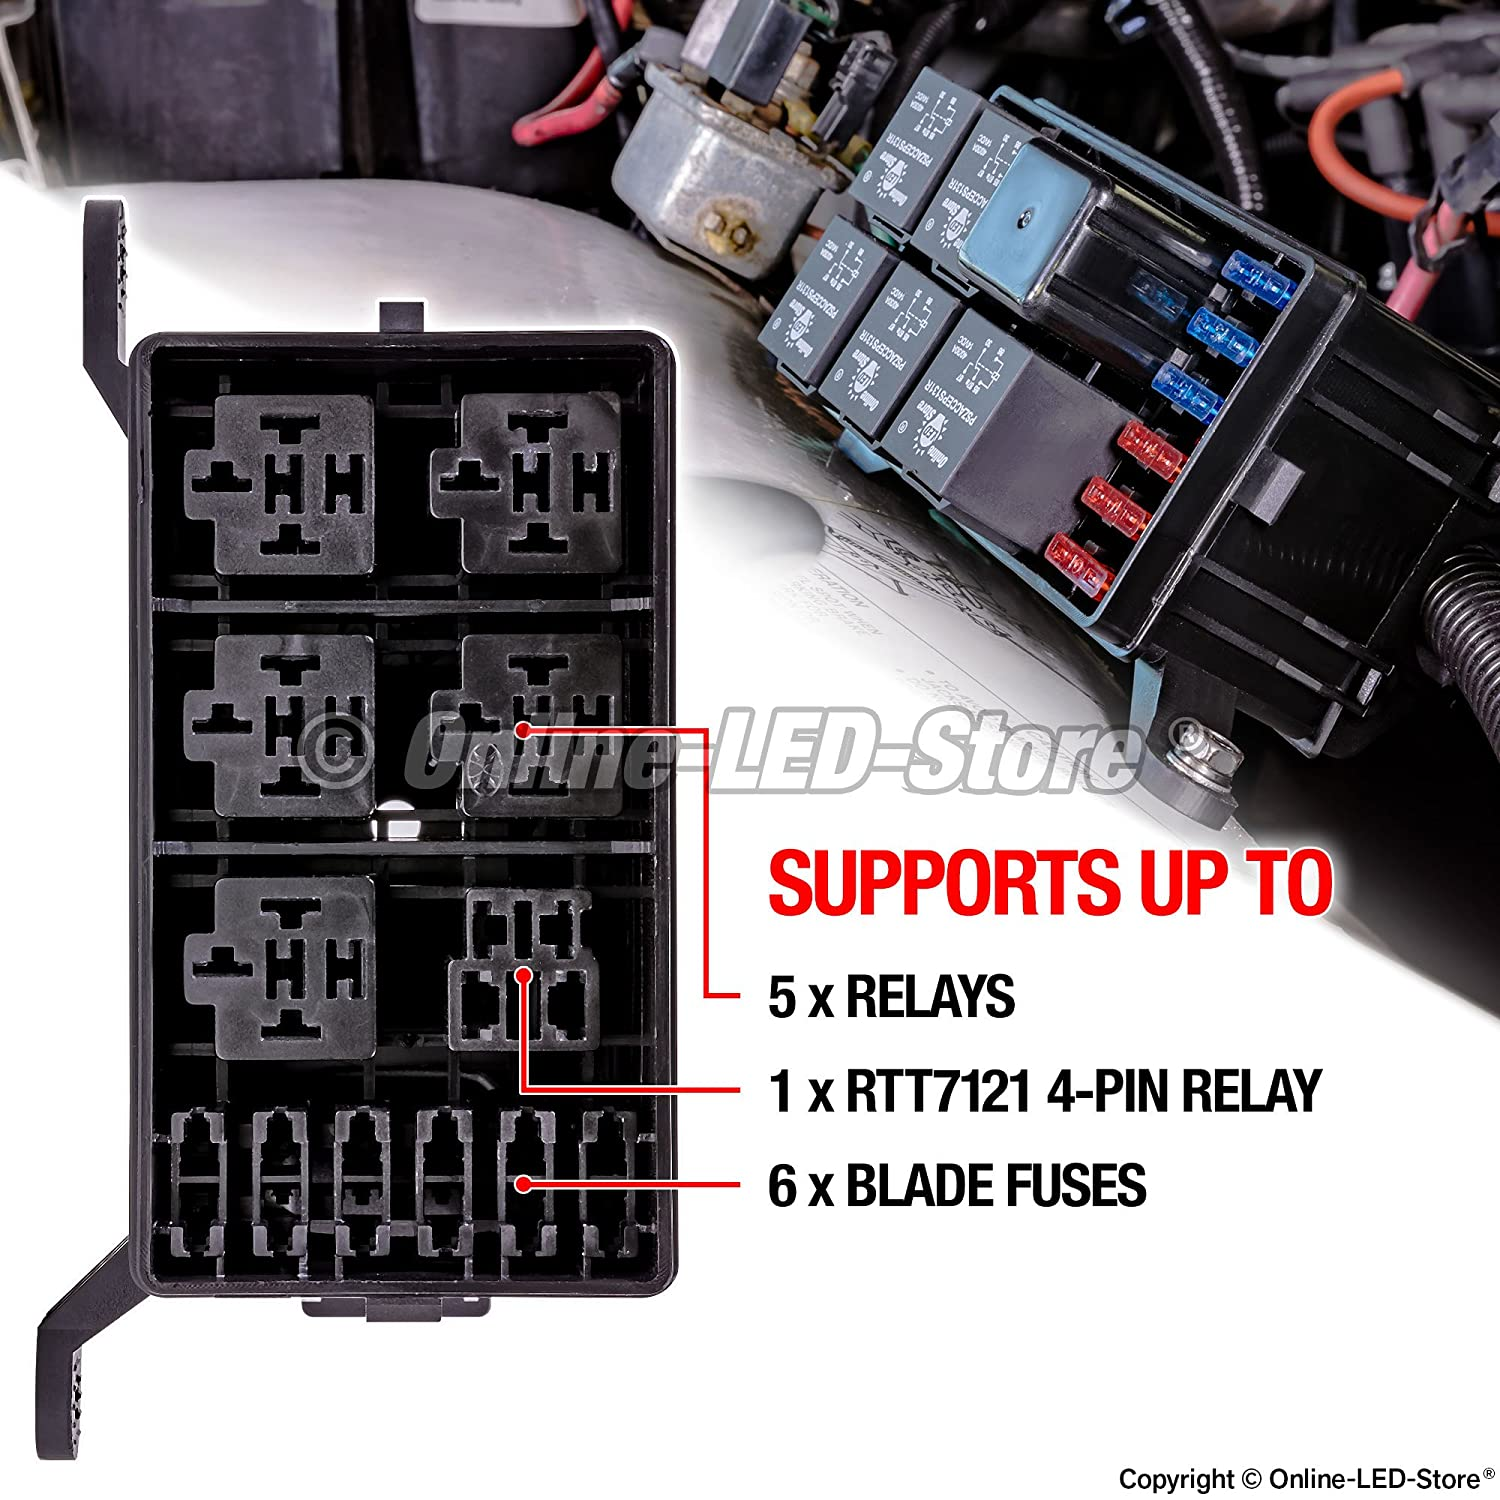 Amazon.com: ONLINE LED STORE 12-Slot Relay Box [6 Relays] [6 Blade Fuses]  [Bosch Style Relays] [Easy Installation] [OEM Factory Look] - Fuse Relay Box  for ...